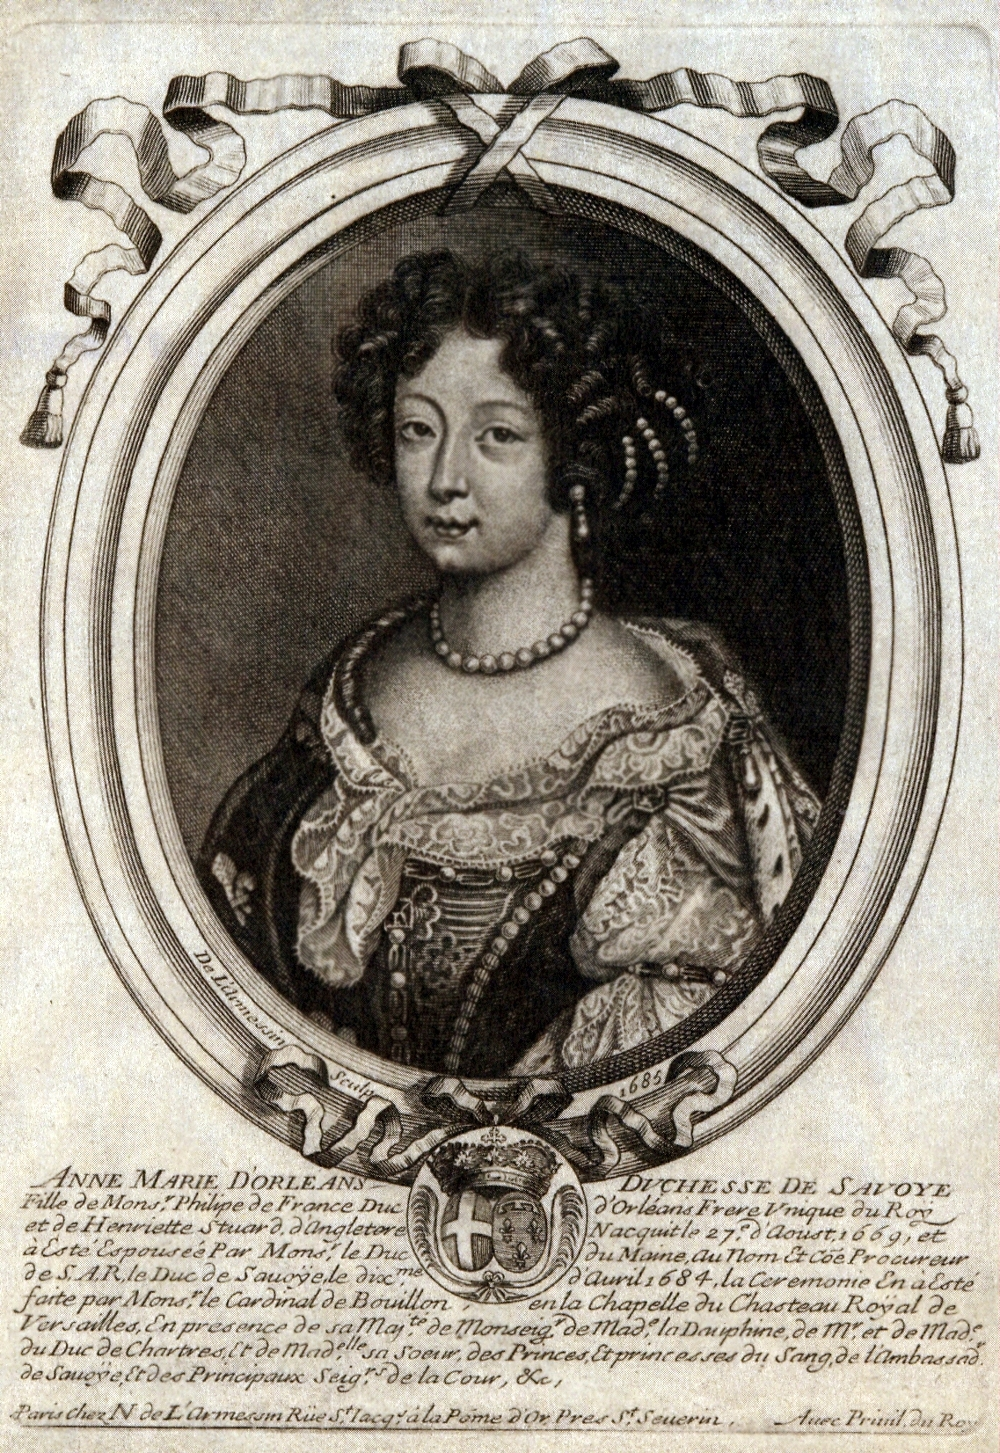 File:Portrait drawing of Anne Marie d'Orléans, Duchess of Savoy 1684.